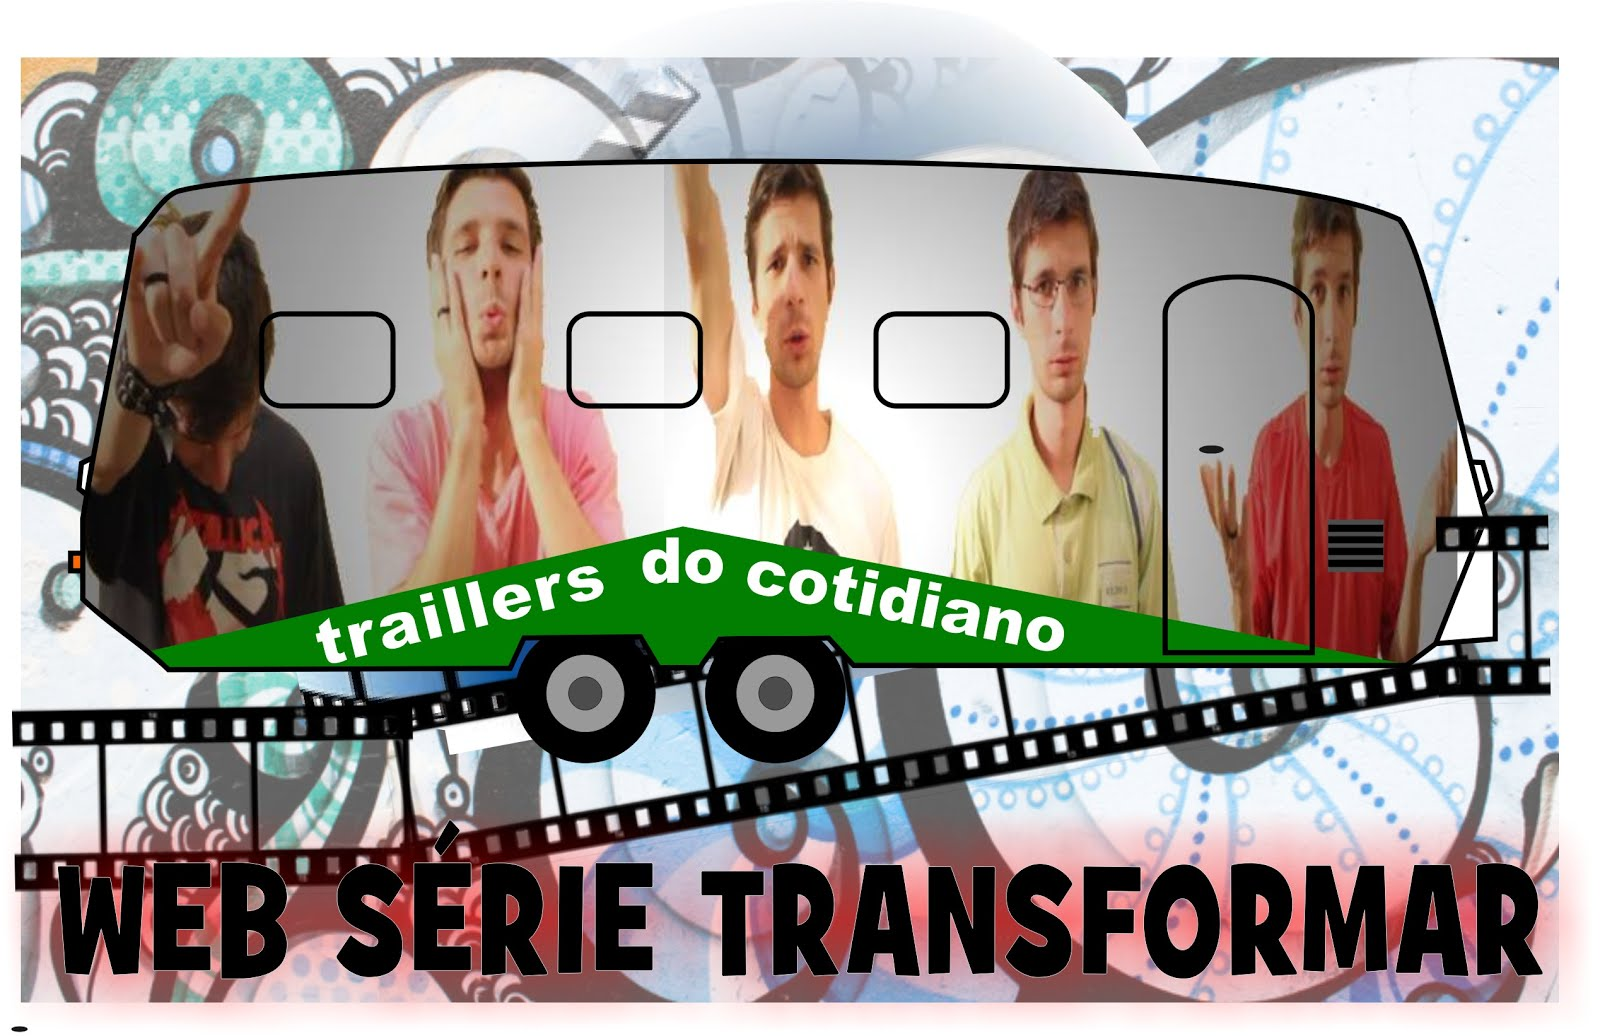 WEB SÉRIE TRAILLERS DO COTIDIANO